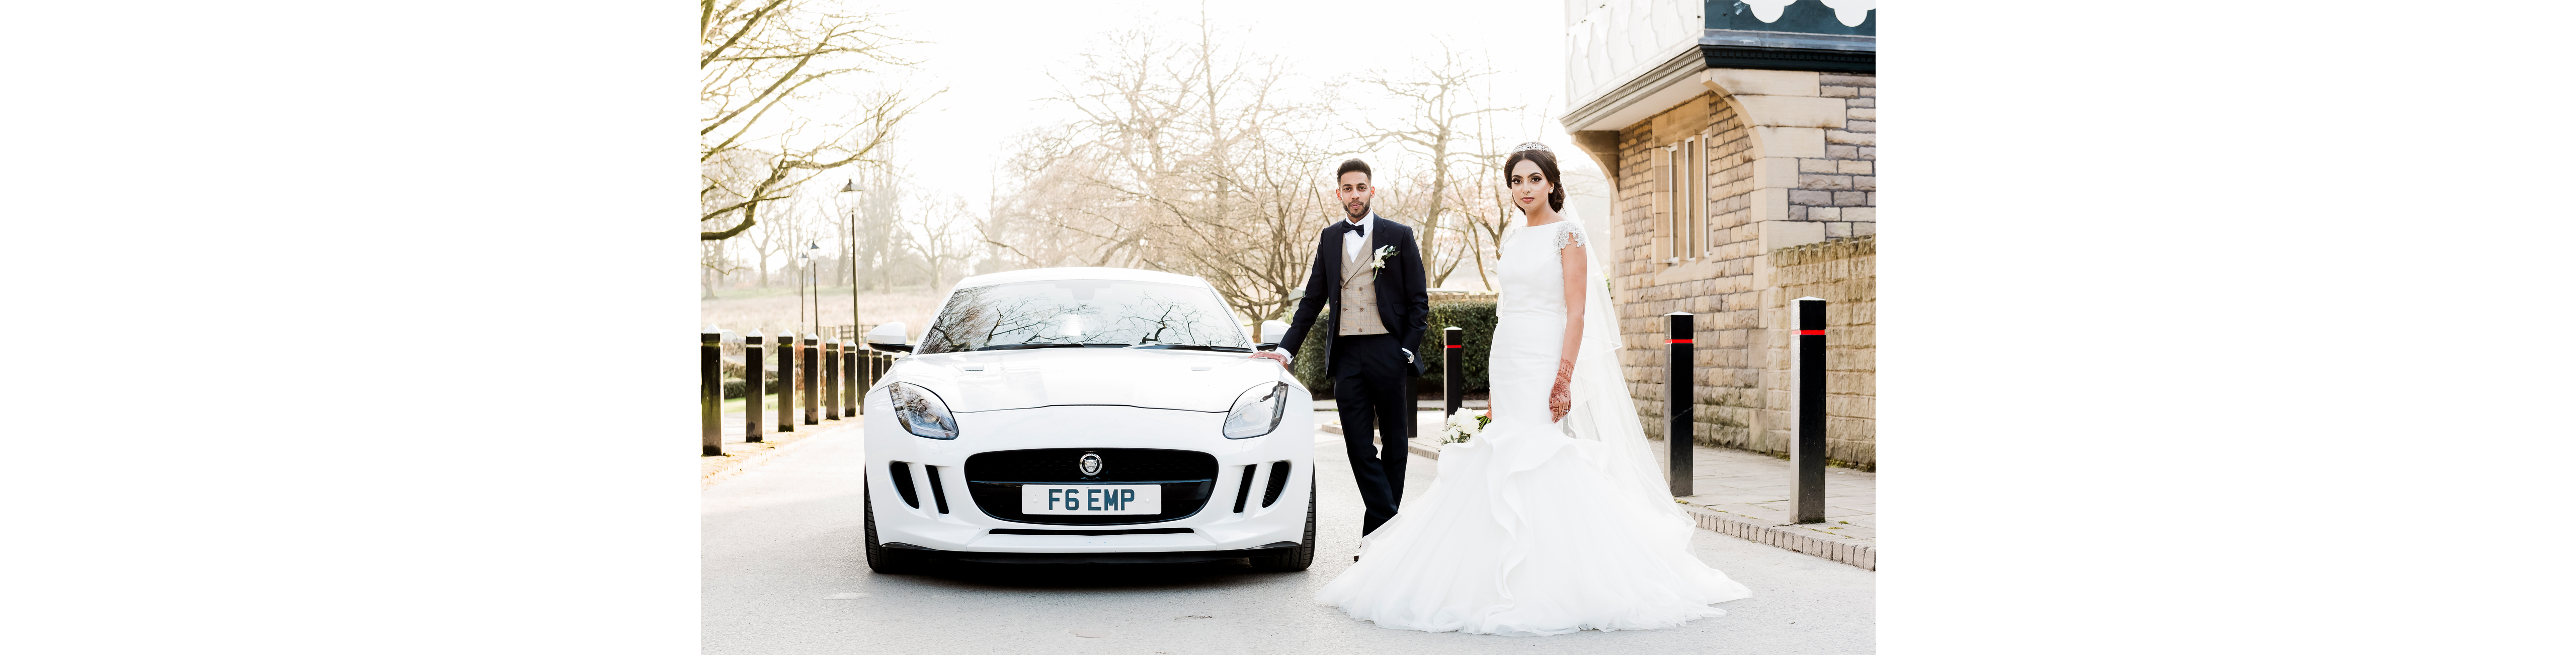 Jaguar-Wedding-Car-Bride-and-Groom